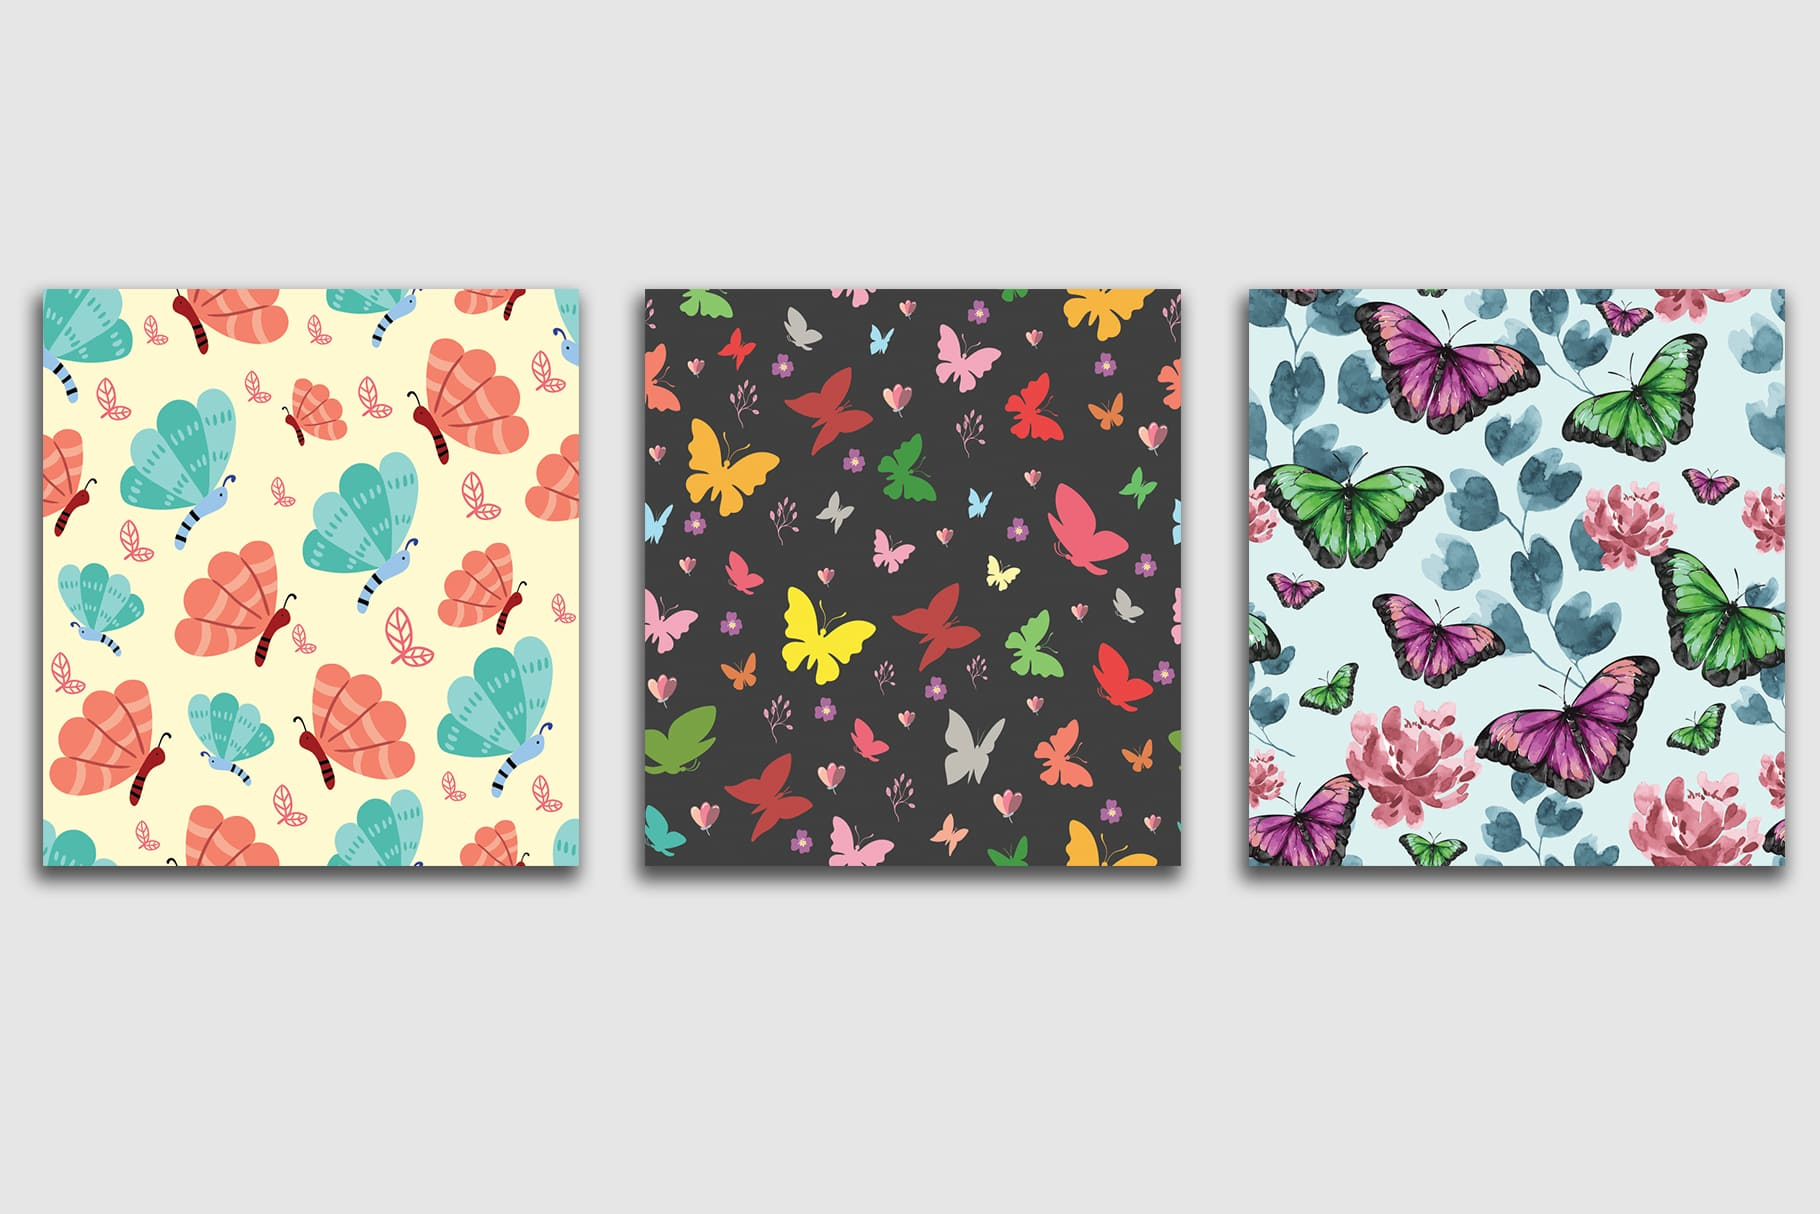 Three tiles in different colors and with different types of butterflies.